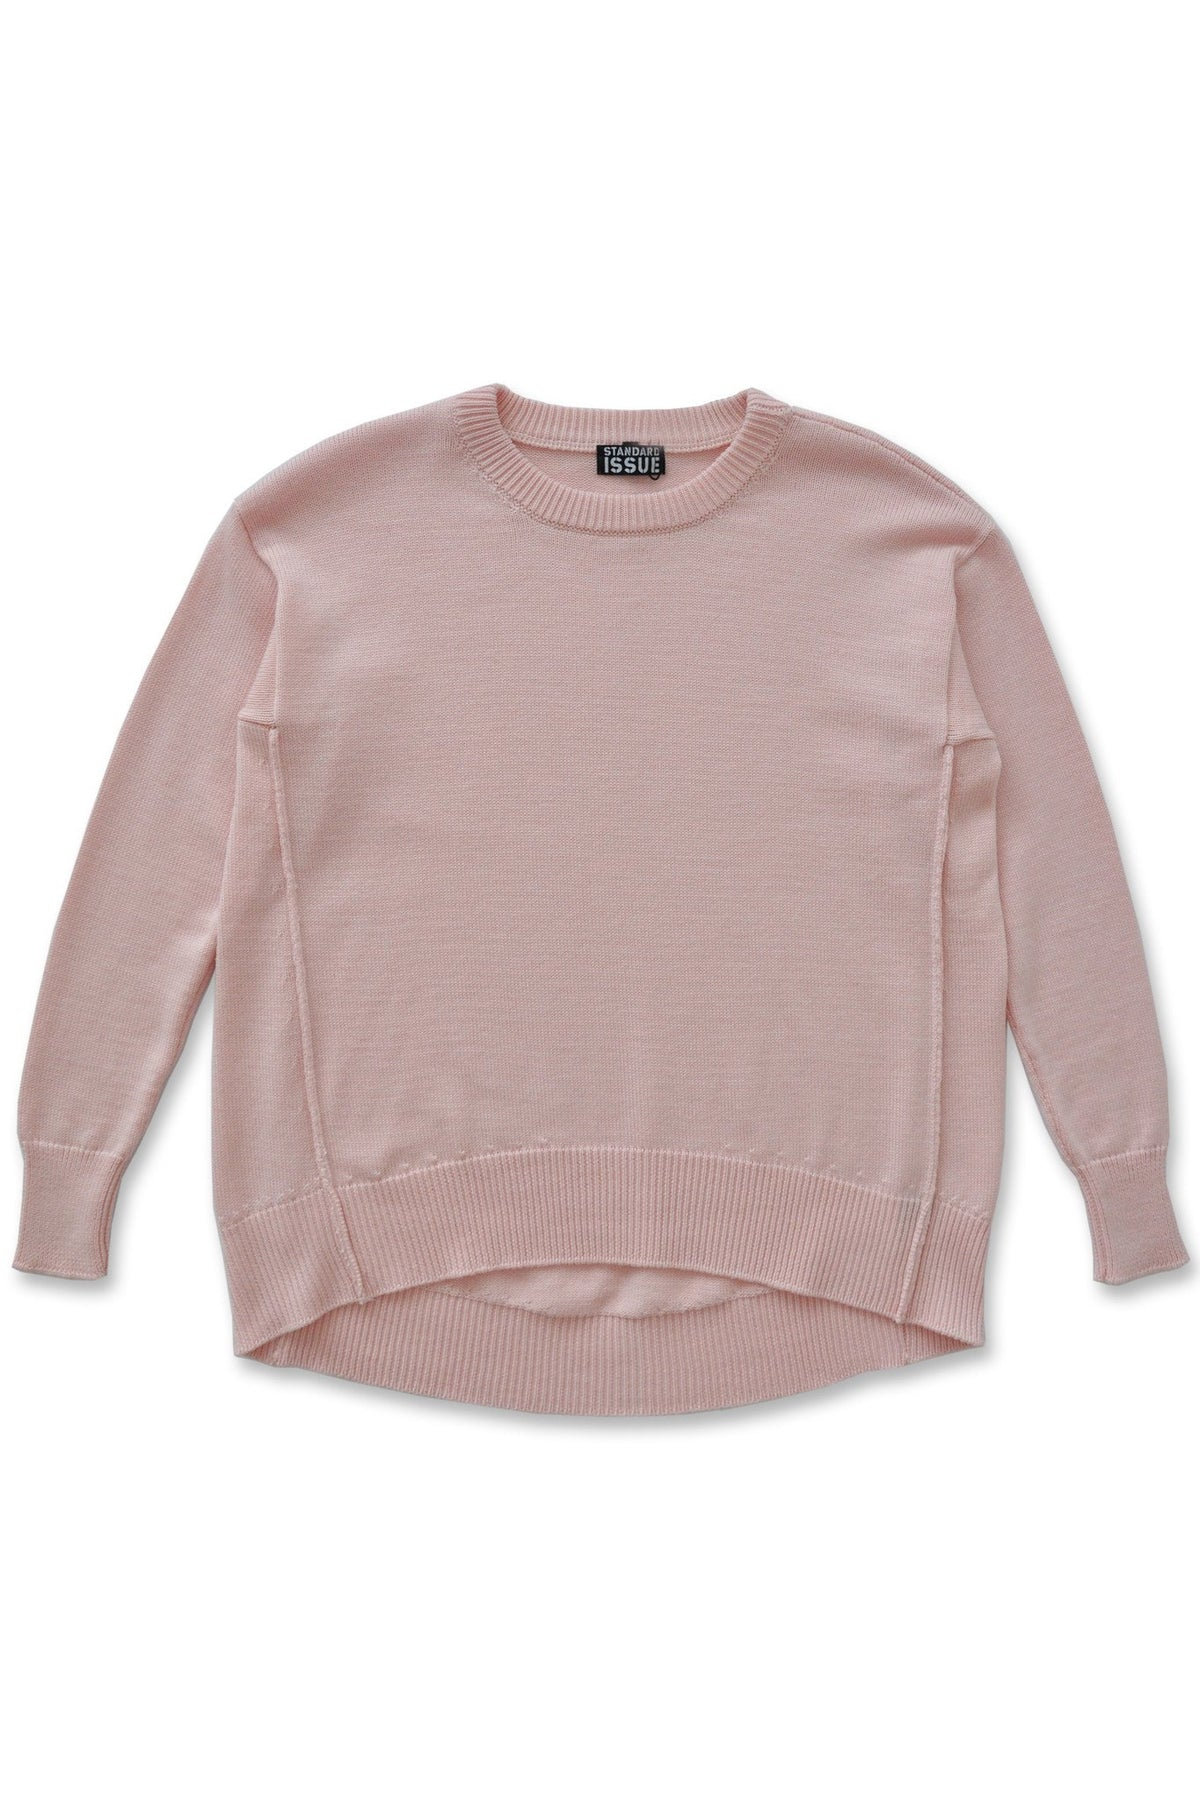 Standard Issue Cocoon sweater Knitwear Stockists Auckland Made in New Zealand NZ Designer Clothing